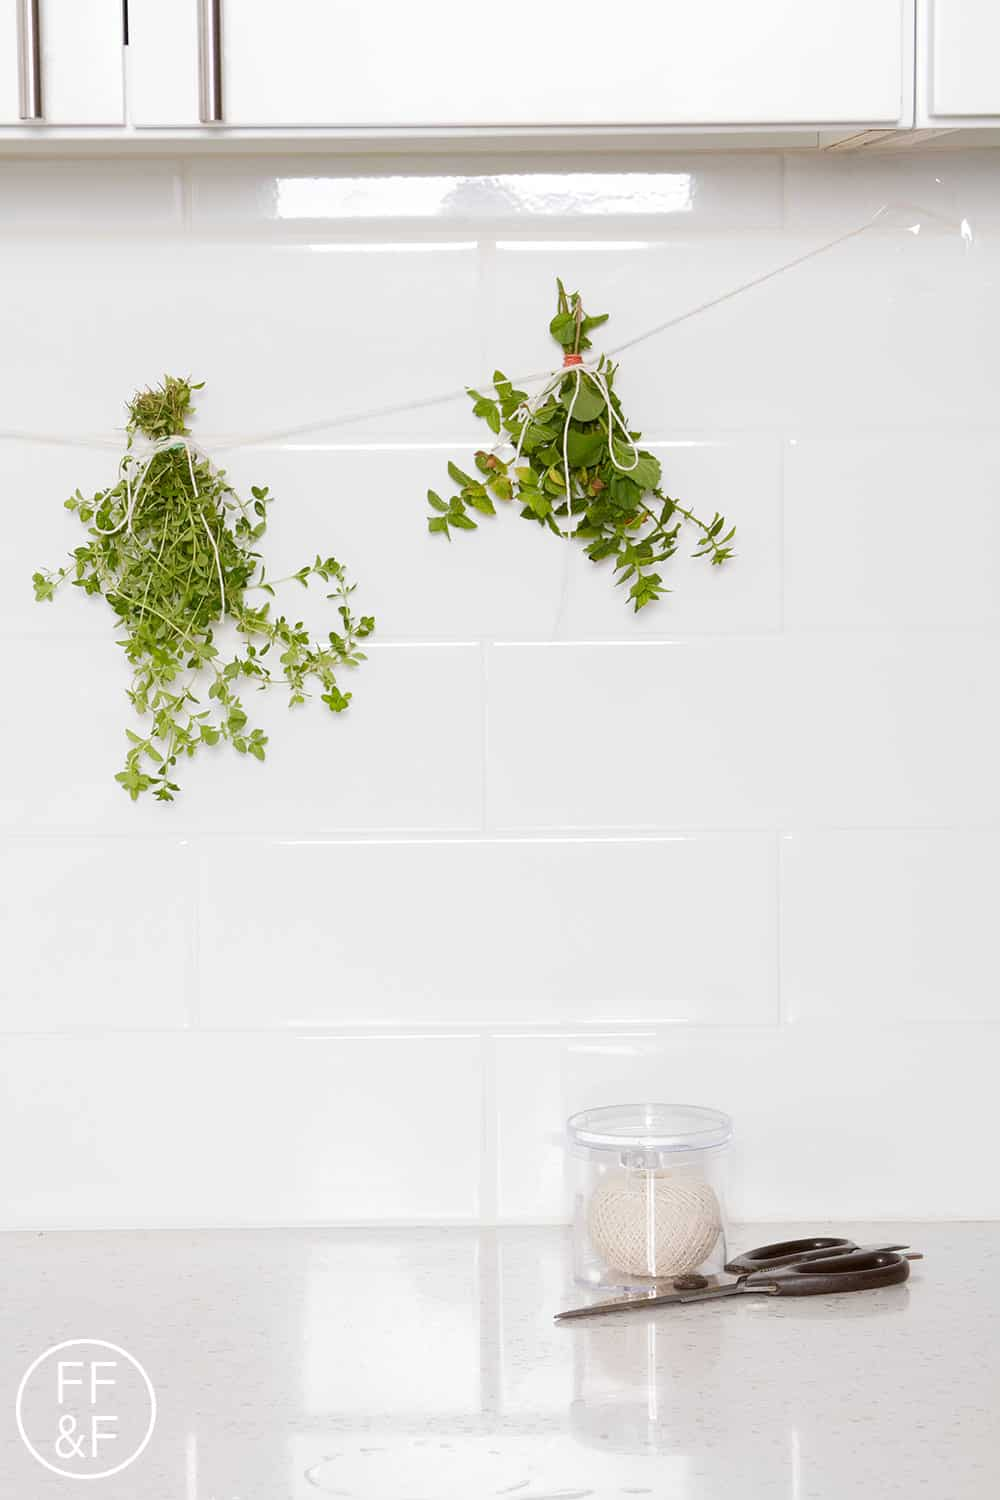 drying herbs, dried herbs, diy, do-it-yourself, lifestyle blog